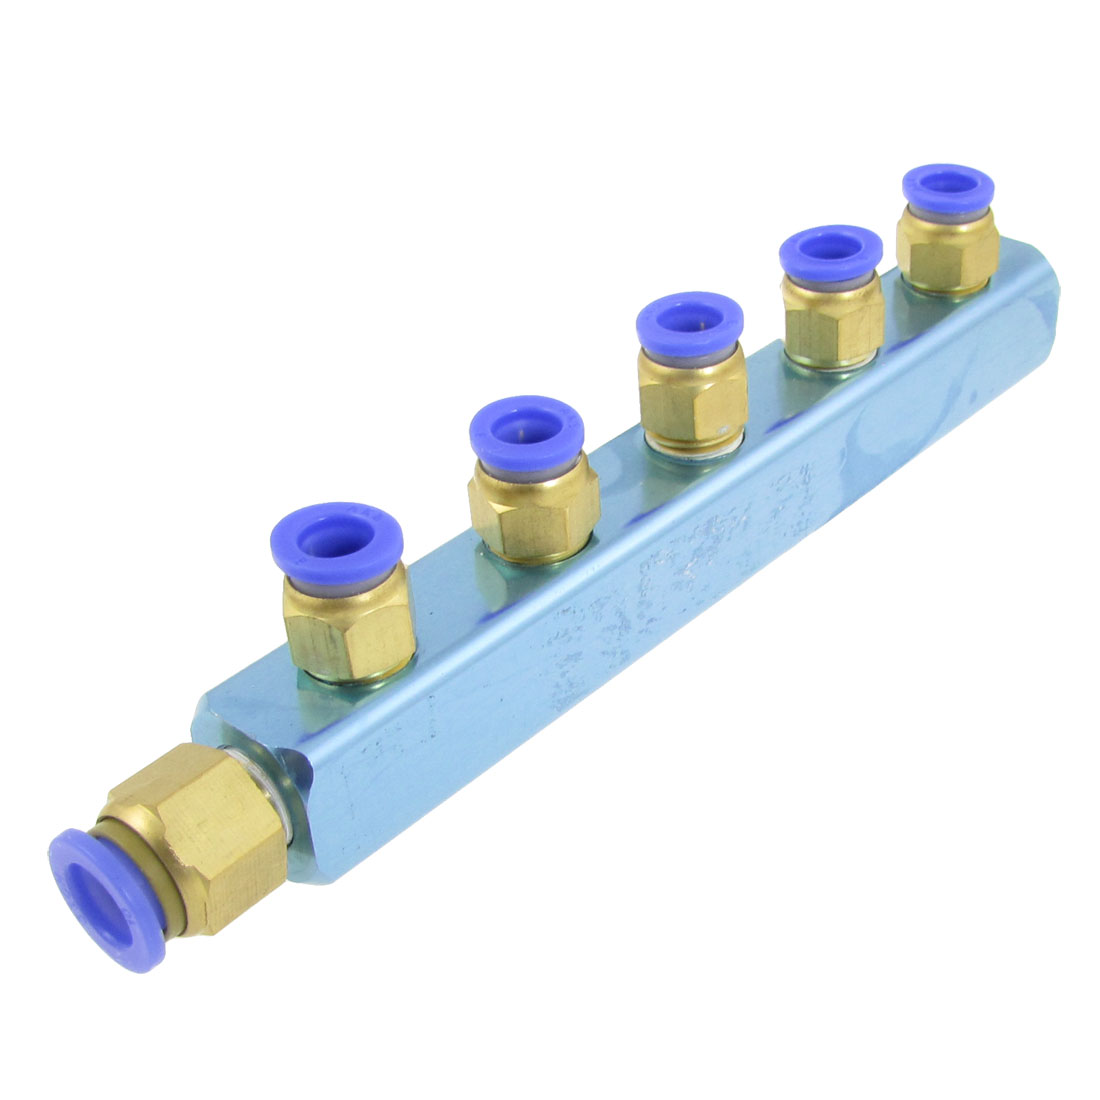 8mm to 10mm Pneumatic Hose Tube One Touch Fitting Manifold Quick Connector